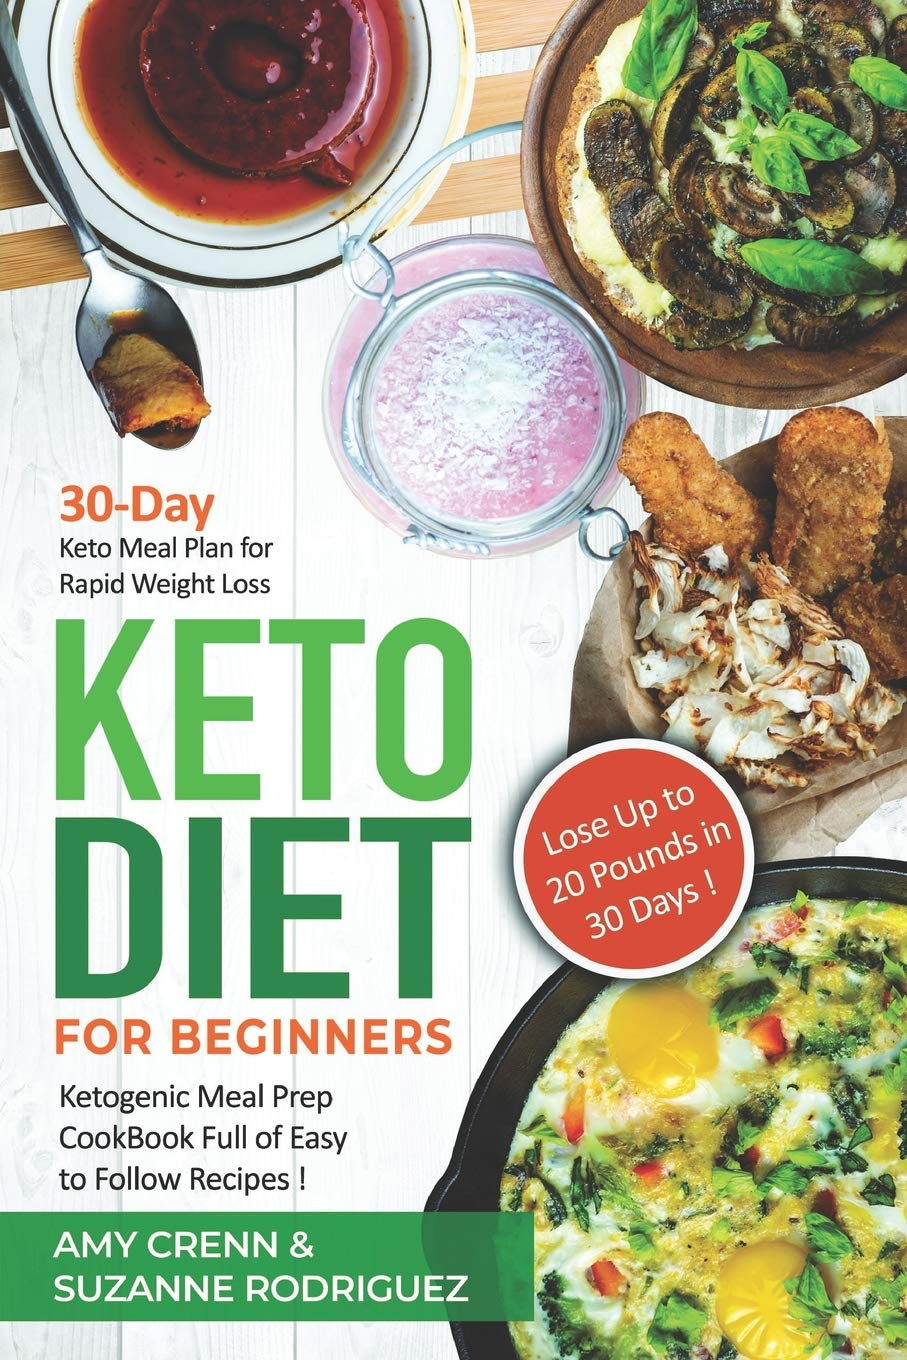 day 4 of keto diet and not in ketosis